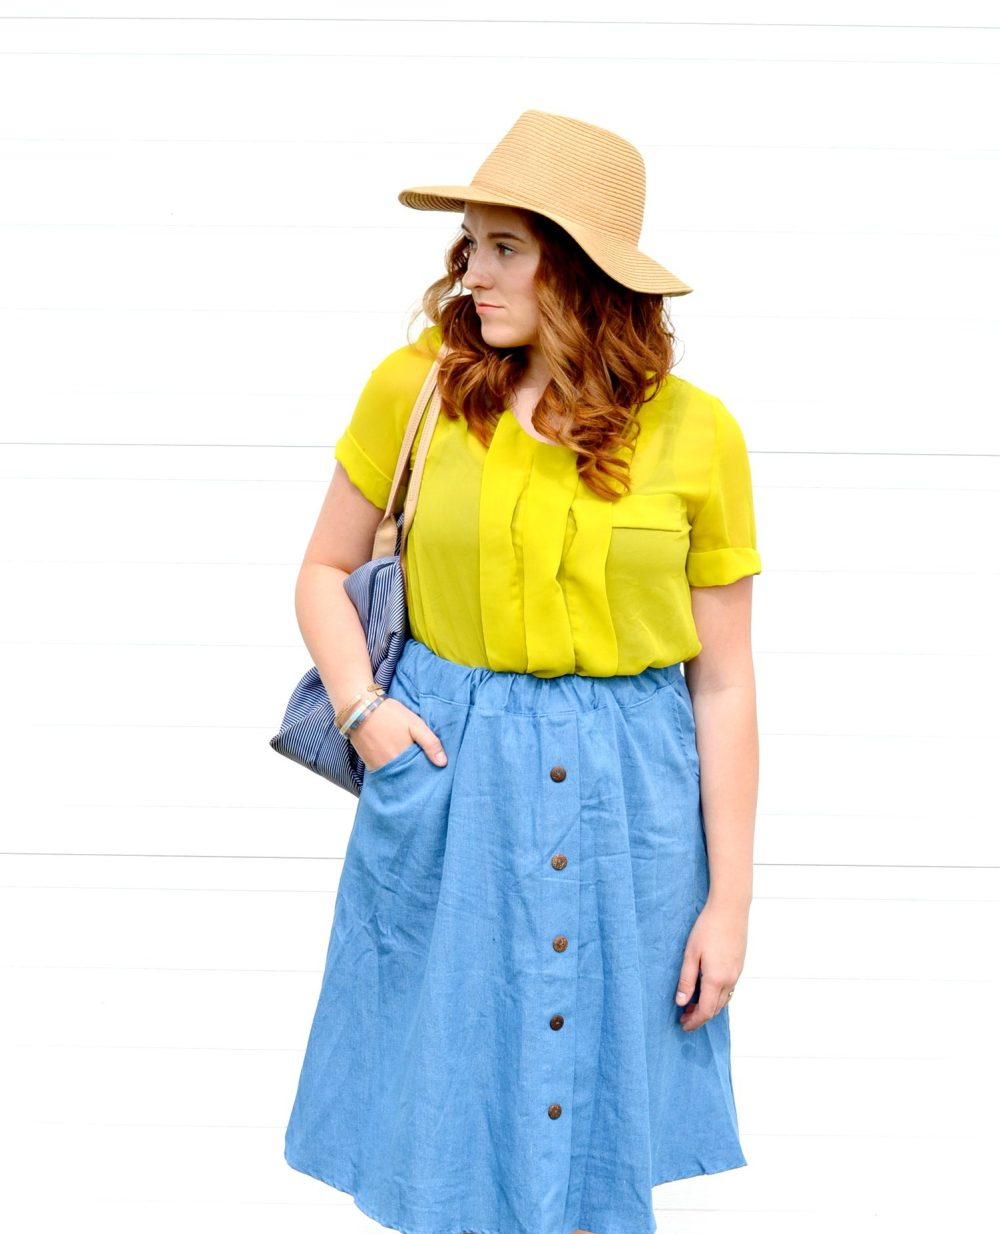 Denim Skirt style, Honey & Betts, Canadian Fashion Blogger